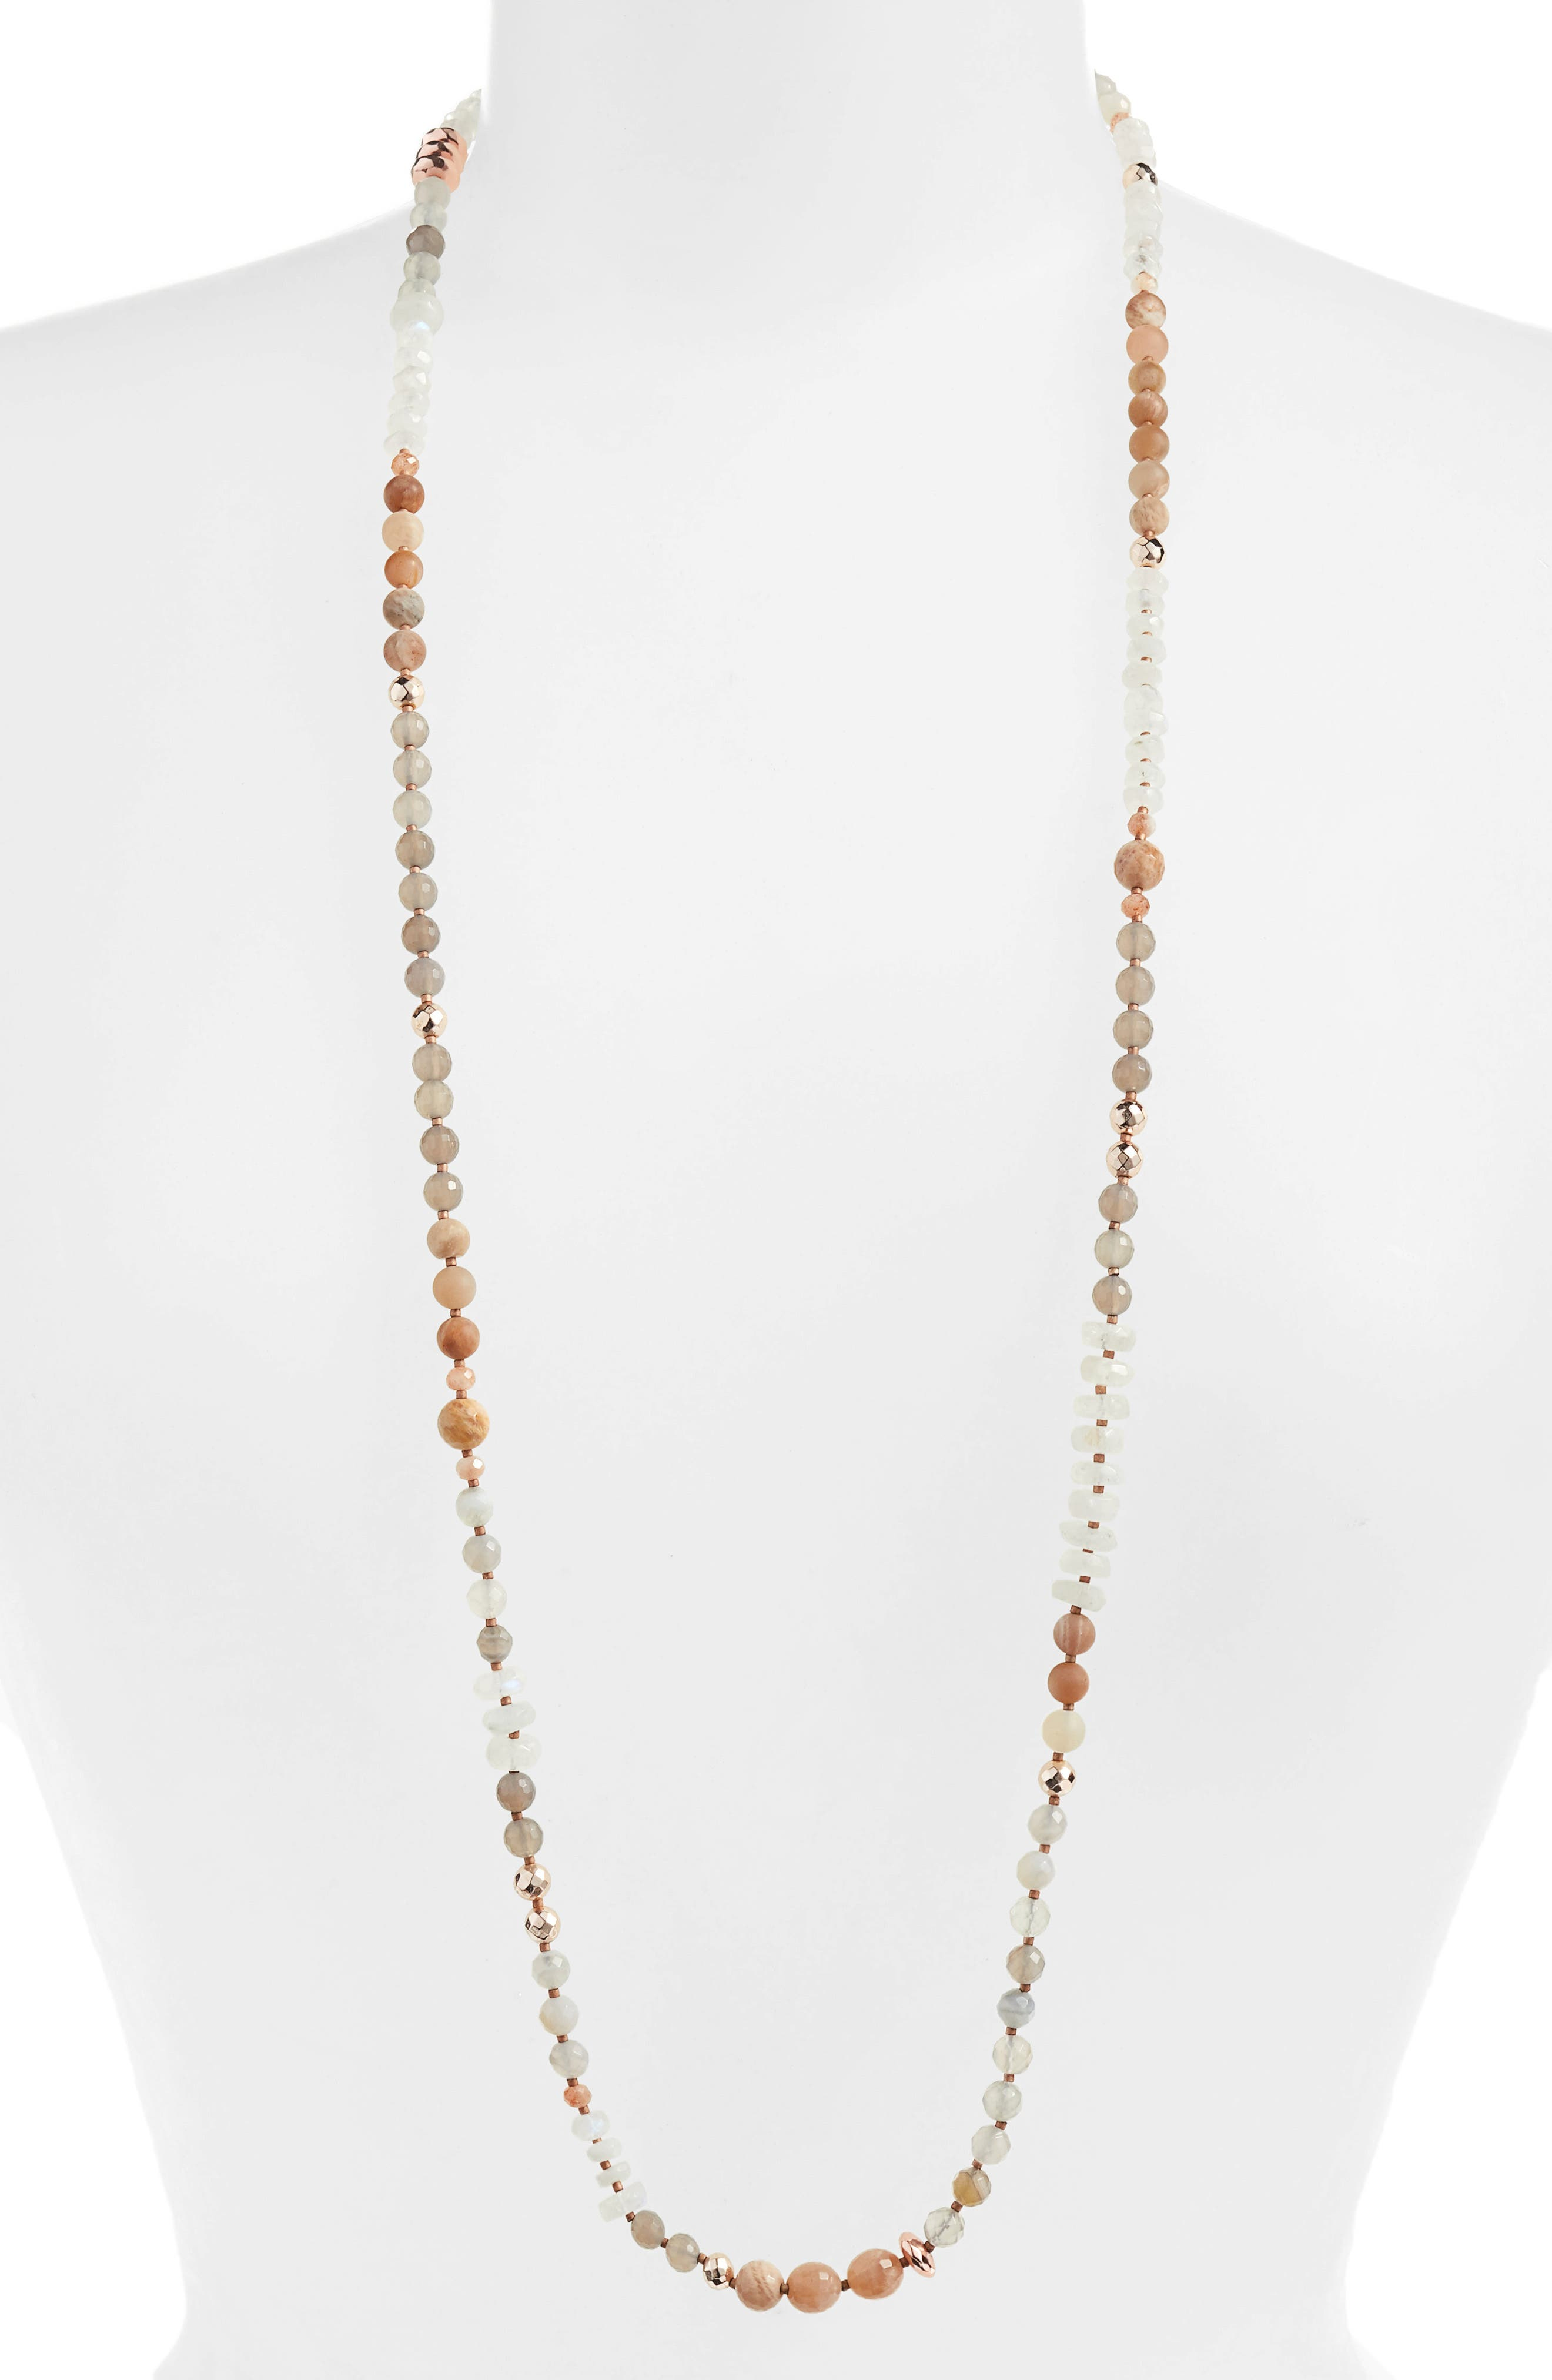 Moonstone Mix Beaded Necklace,                         Main,                         color, MOONSTONE MIX